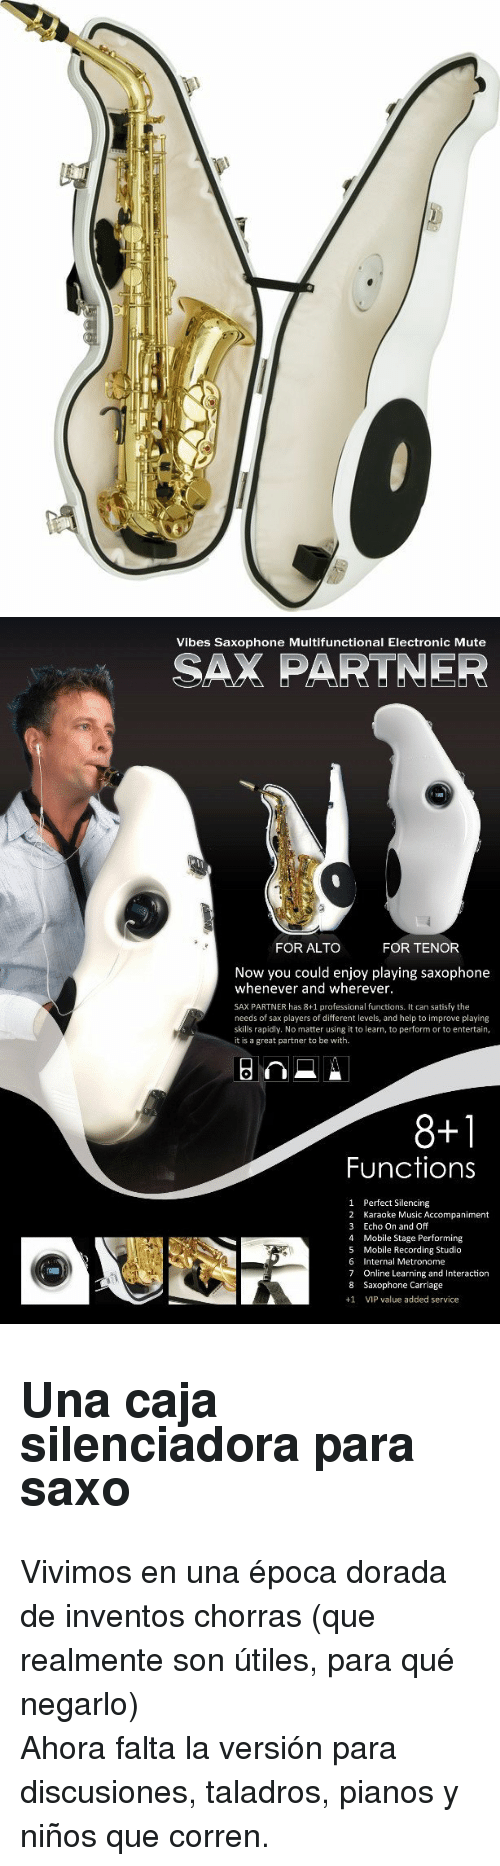 Music, Mute, and Help: Vibes Saxophone Multifunctional Electronic Mute  SAX PARTNER  FOR ALTO  FOR TENOR  Now you could enjoy playing saxophone  whenever and wherever.  SAX PARTNER has 8+1 professional functions. It can satisfy the  needs of sax players of different levels, and help to improve playing  skills rapidly. No matter using it to learn, to perform or to entertain  it is a great partner to be with  8+1  Functions  1  2  3  4  5  6  7  8  +1  Perfect Silencing  Karaoke Music Accompaniment  Echo On and Off  Mobile Stage Performing  Mobile Recording Studio  Internal Metronome  Online Learning and Interaction  Saxophone Carriage  VIP value added service <h2>Una caja silenciadora para saxo</h2><p>Vivimos en una época dorada de inventos chorras (que realmente son útiles, para qué negarlo)</p><p>Ahora falta la versión para discusiones, taladros, pianos y niños que corren.</p>